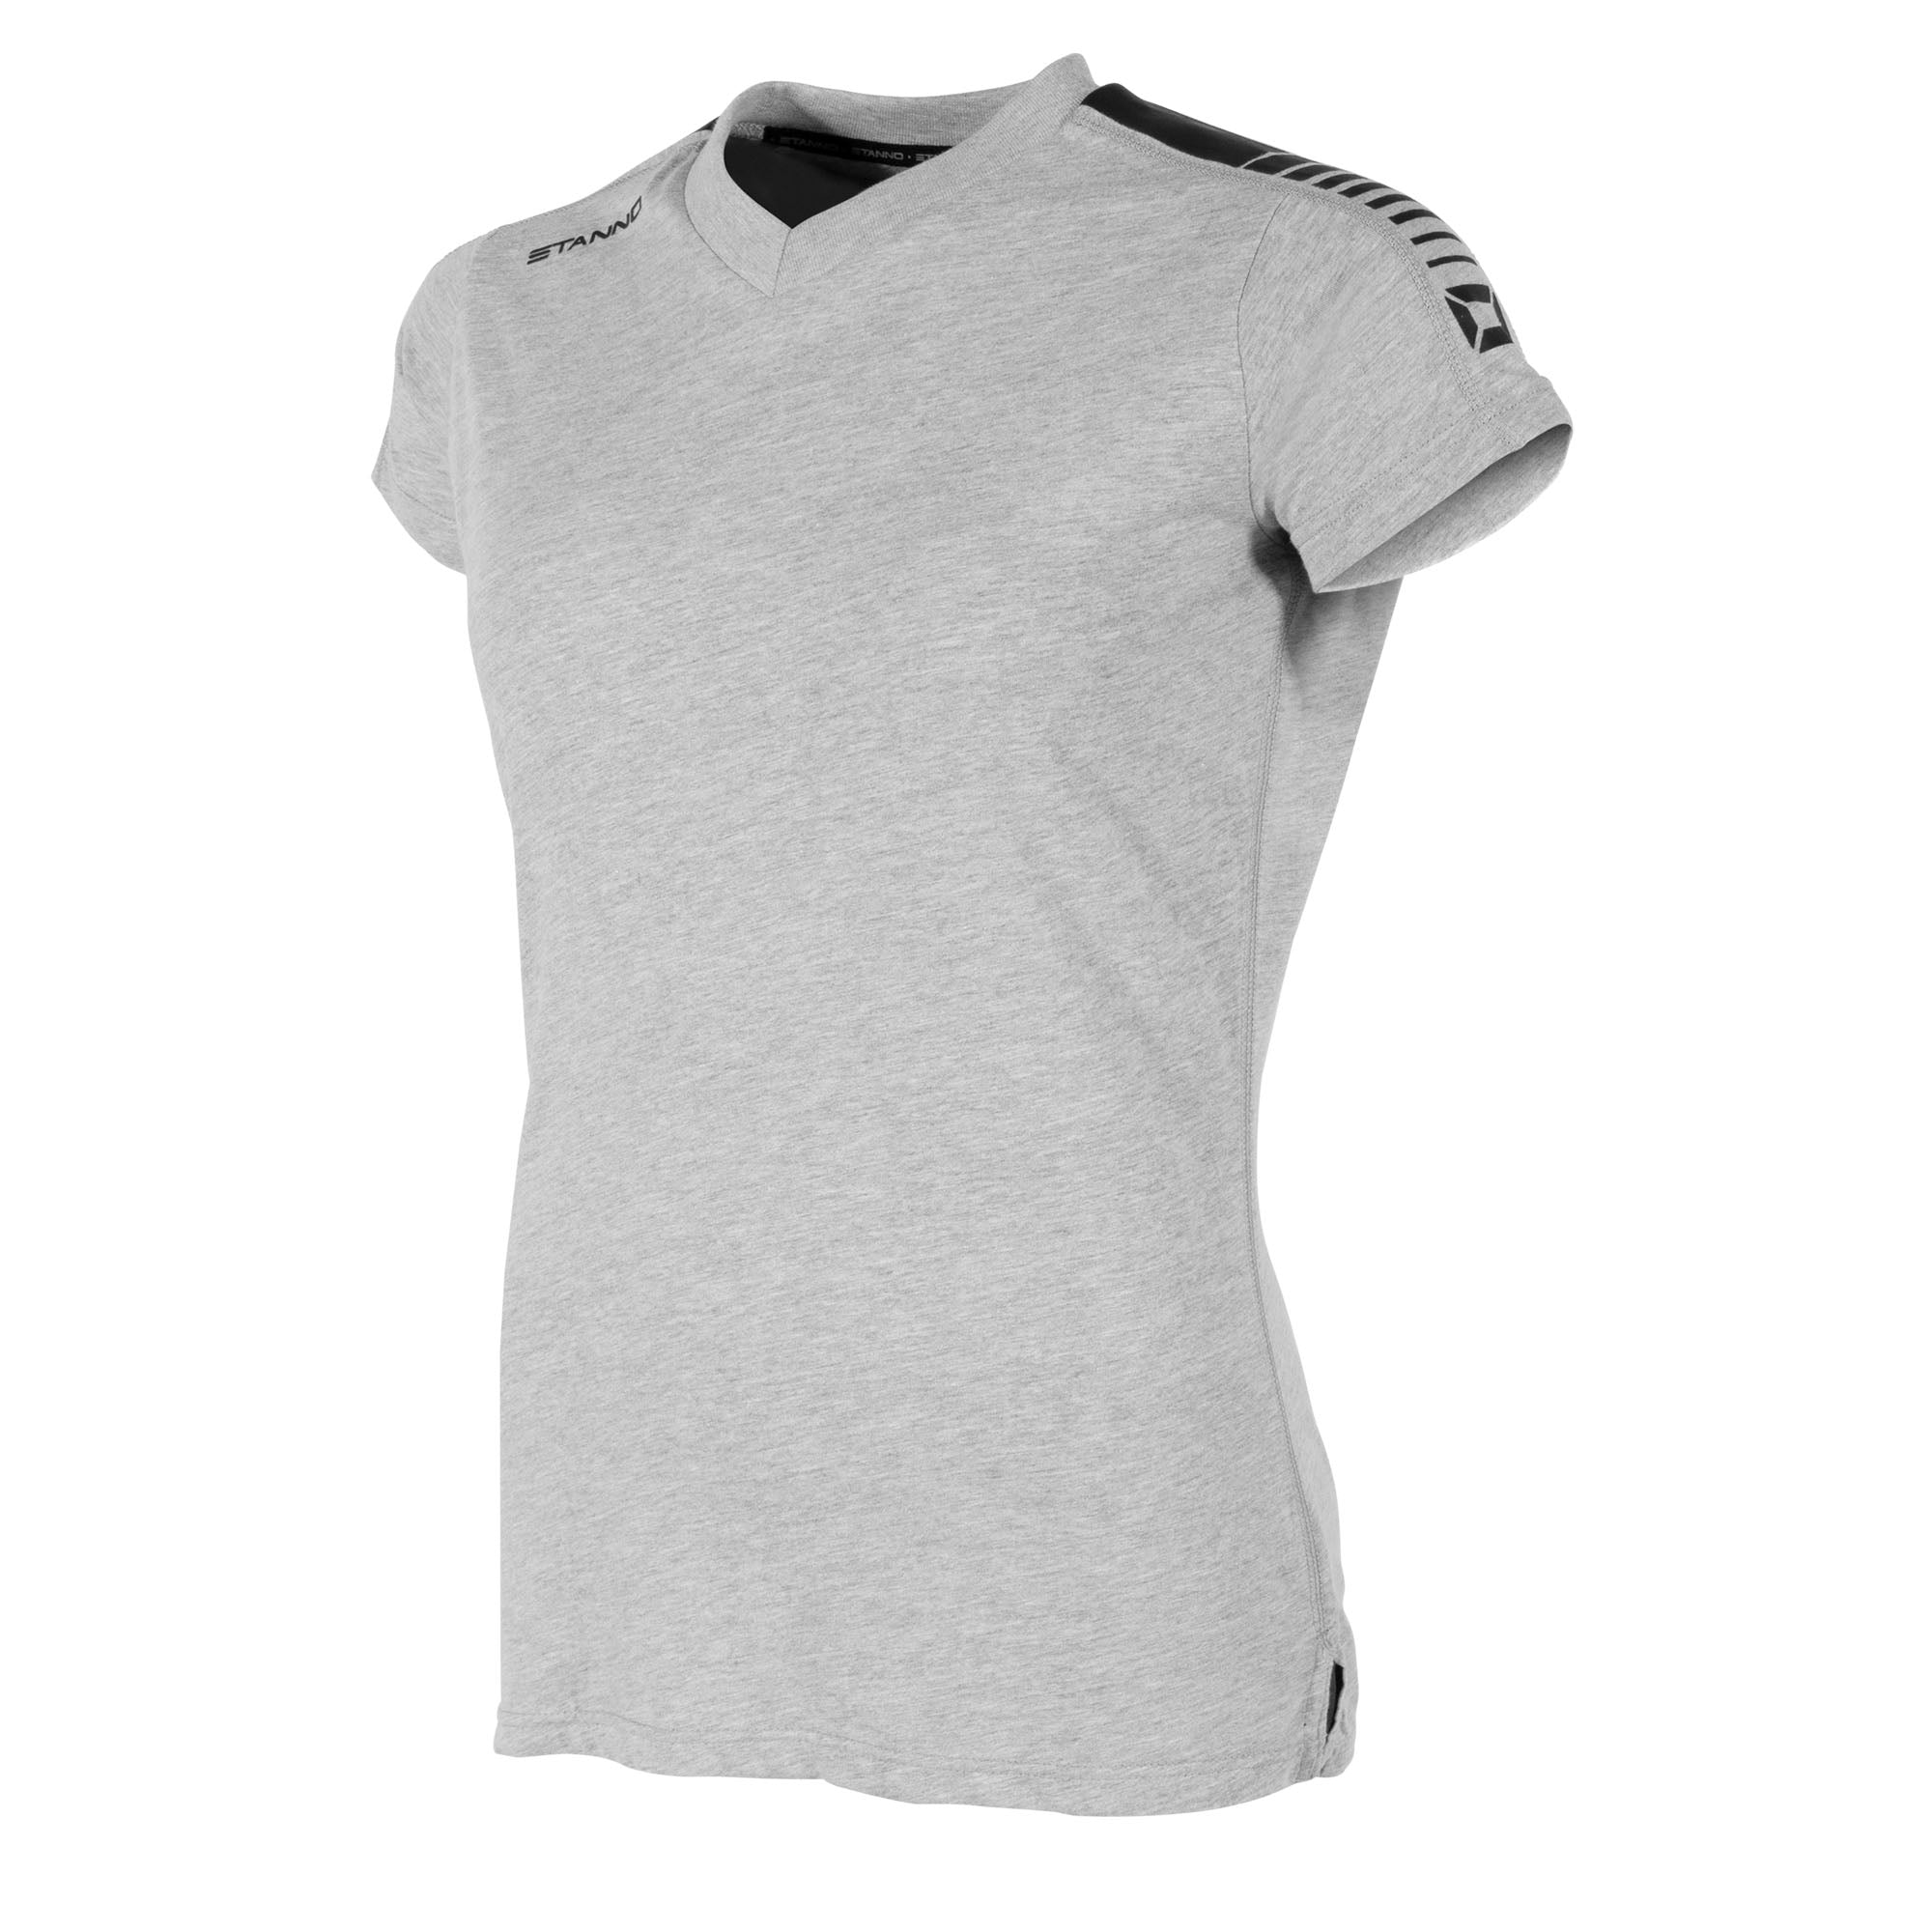 Front view of grey Stanno Ease T-Shirt Ladies with v-neck, side slit design, and black shoulder print.